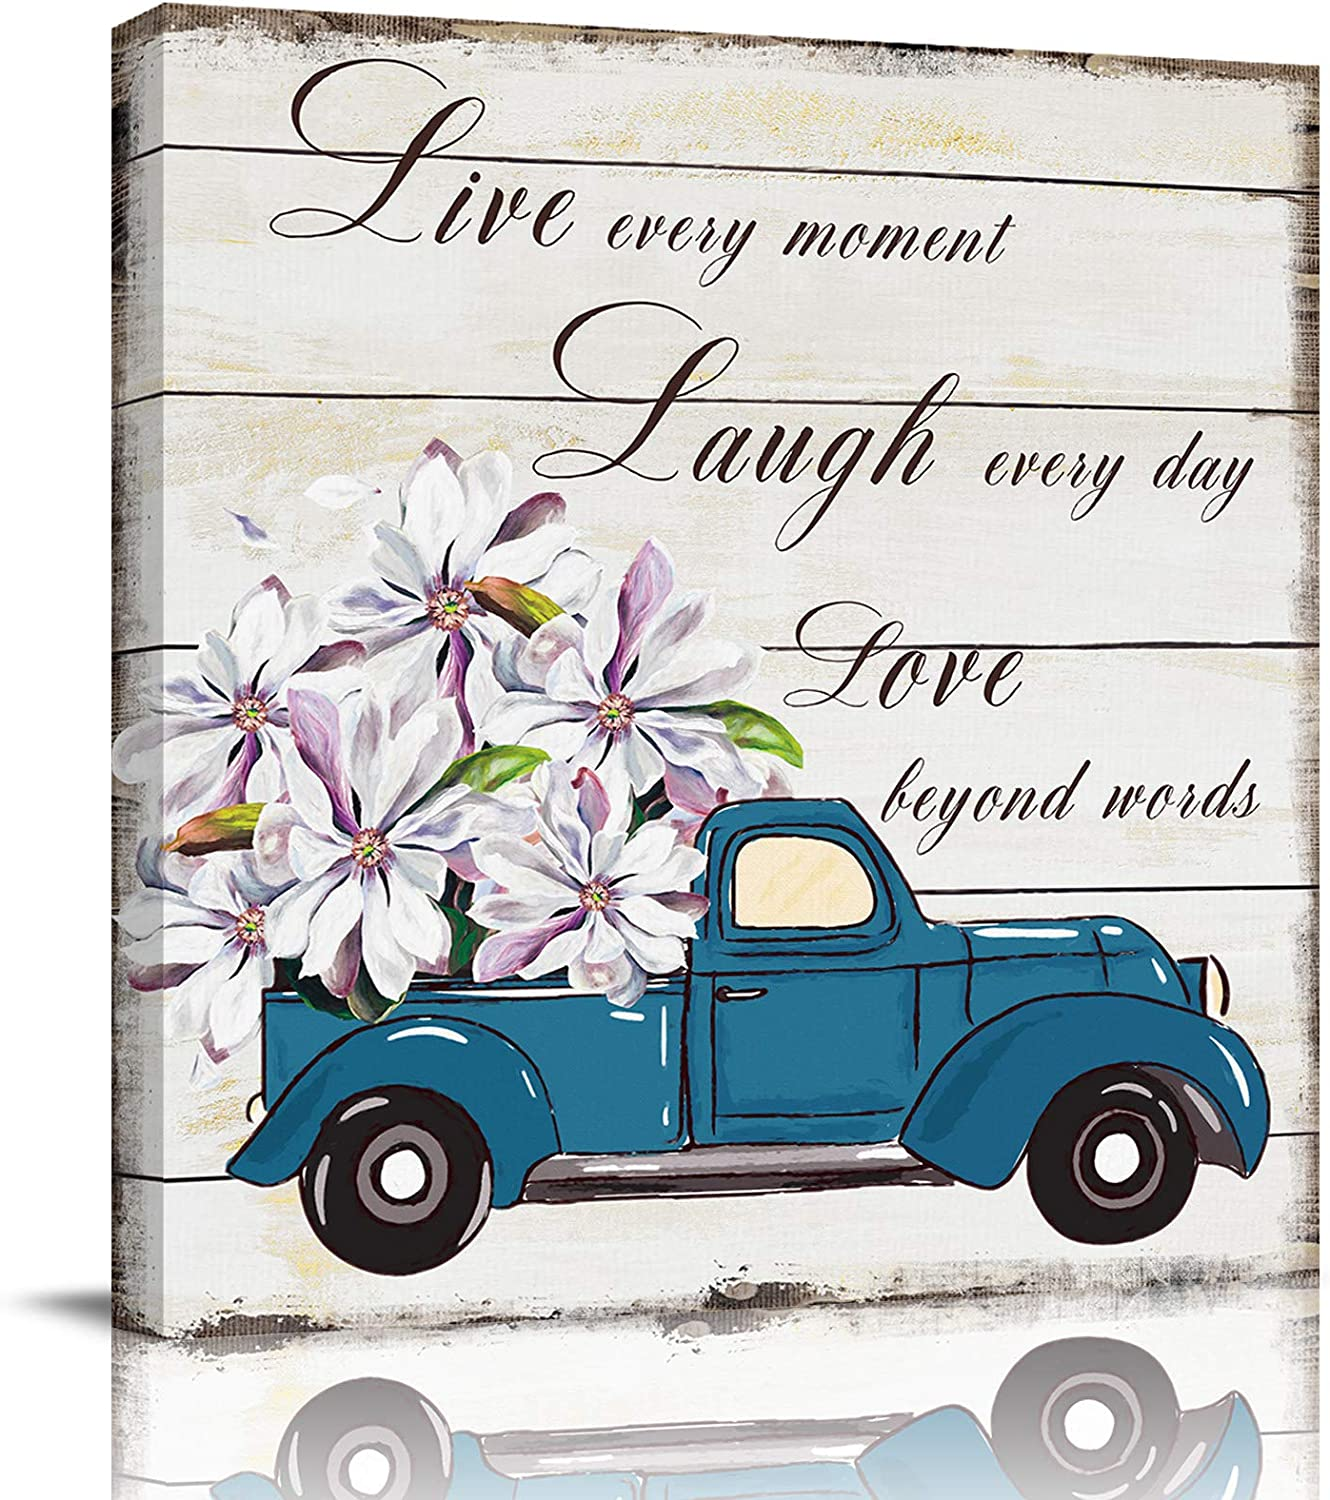 Bathroom Decor Canvas Wall Art, Blue Truck Carrying Magnolia Flowers Live Laugh Love Quotes Canvas Prints Gallery Artworks for Bedroom, Stretched and Framed Ready to Hang, 12x12 Inch Wall Decor